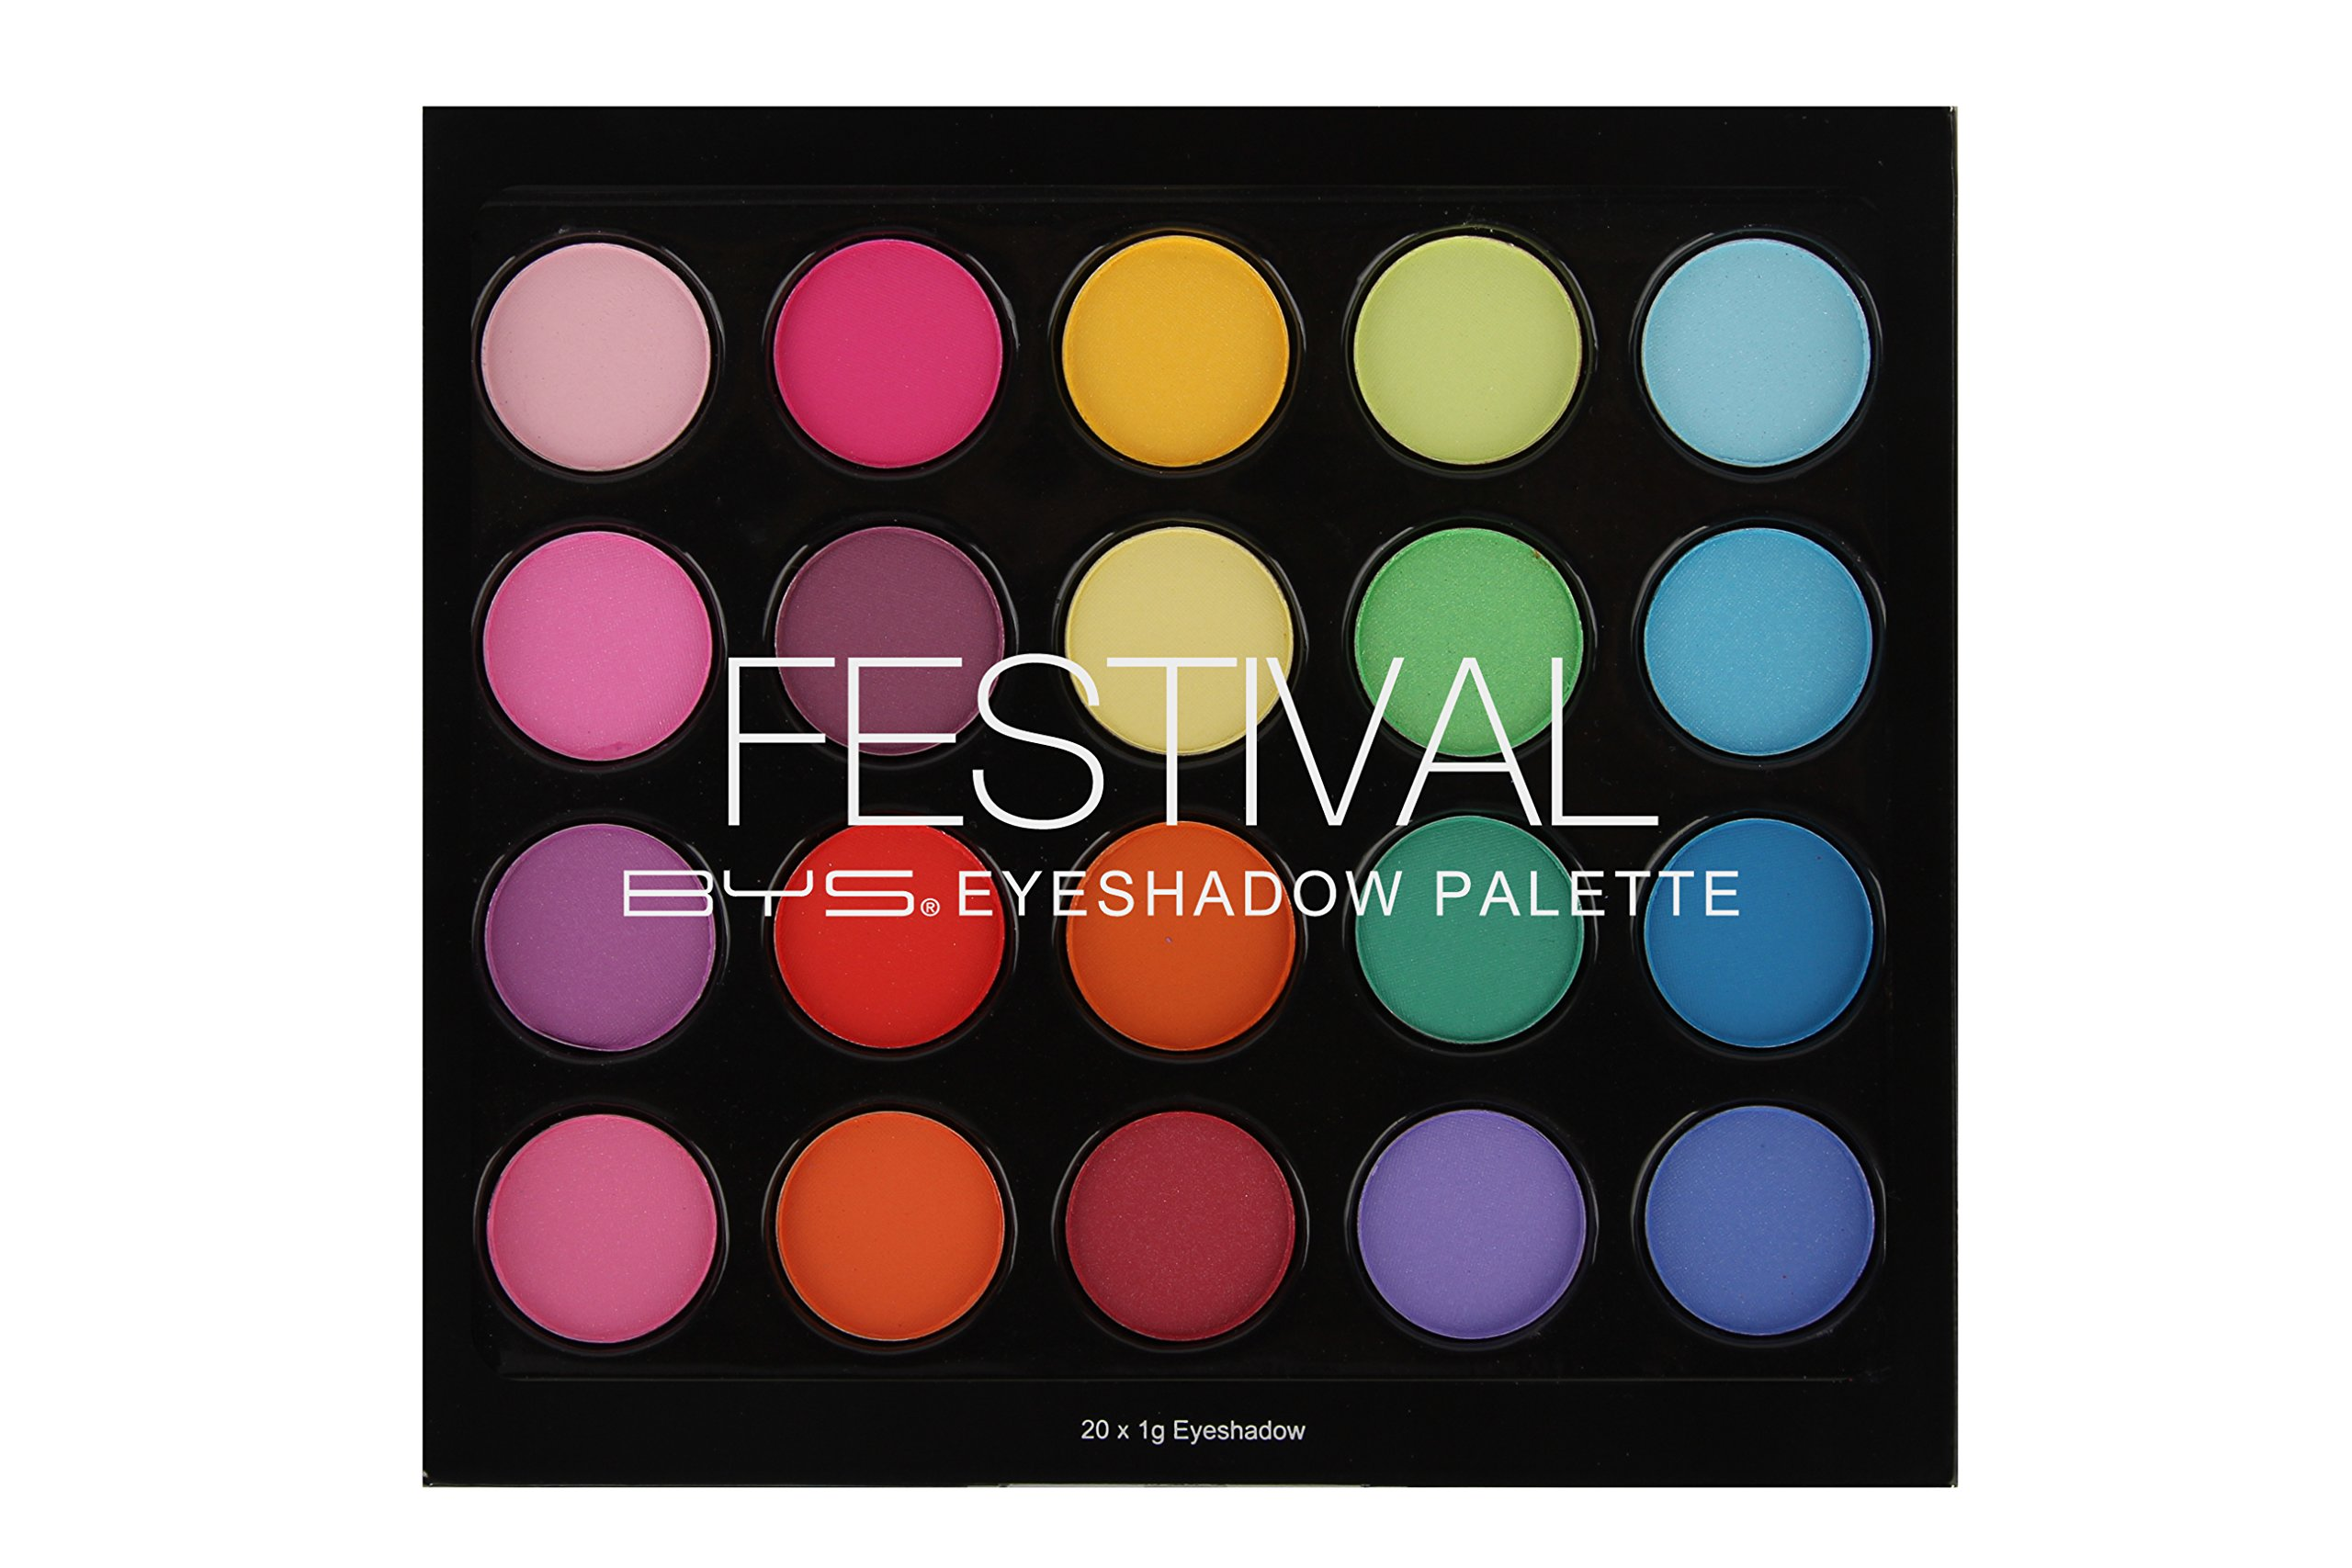 BYS Festival Eyeshadow Palette - 20 Shades by BYS (Image #1)